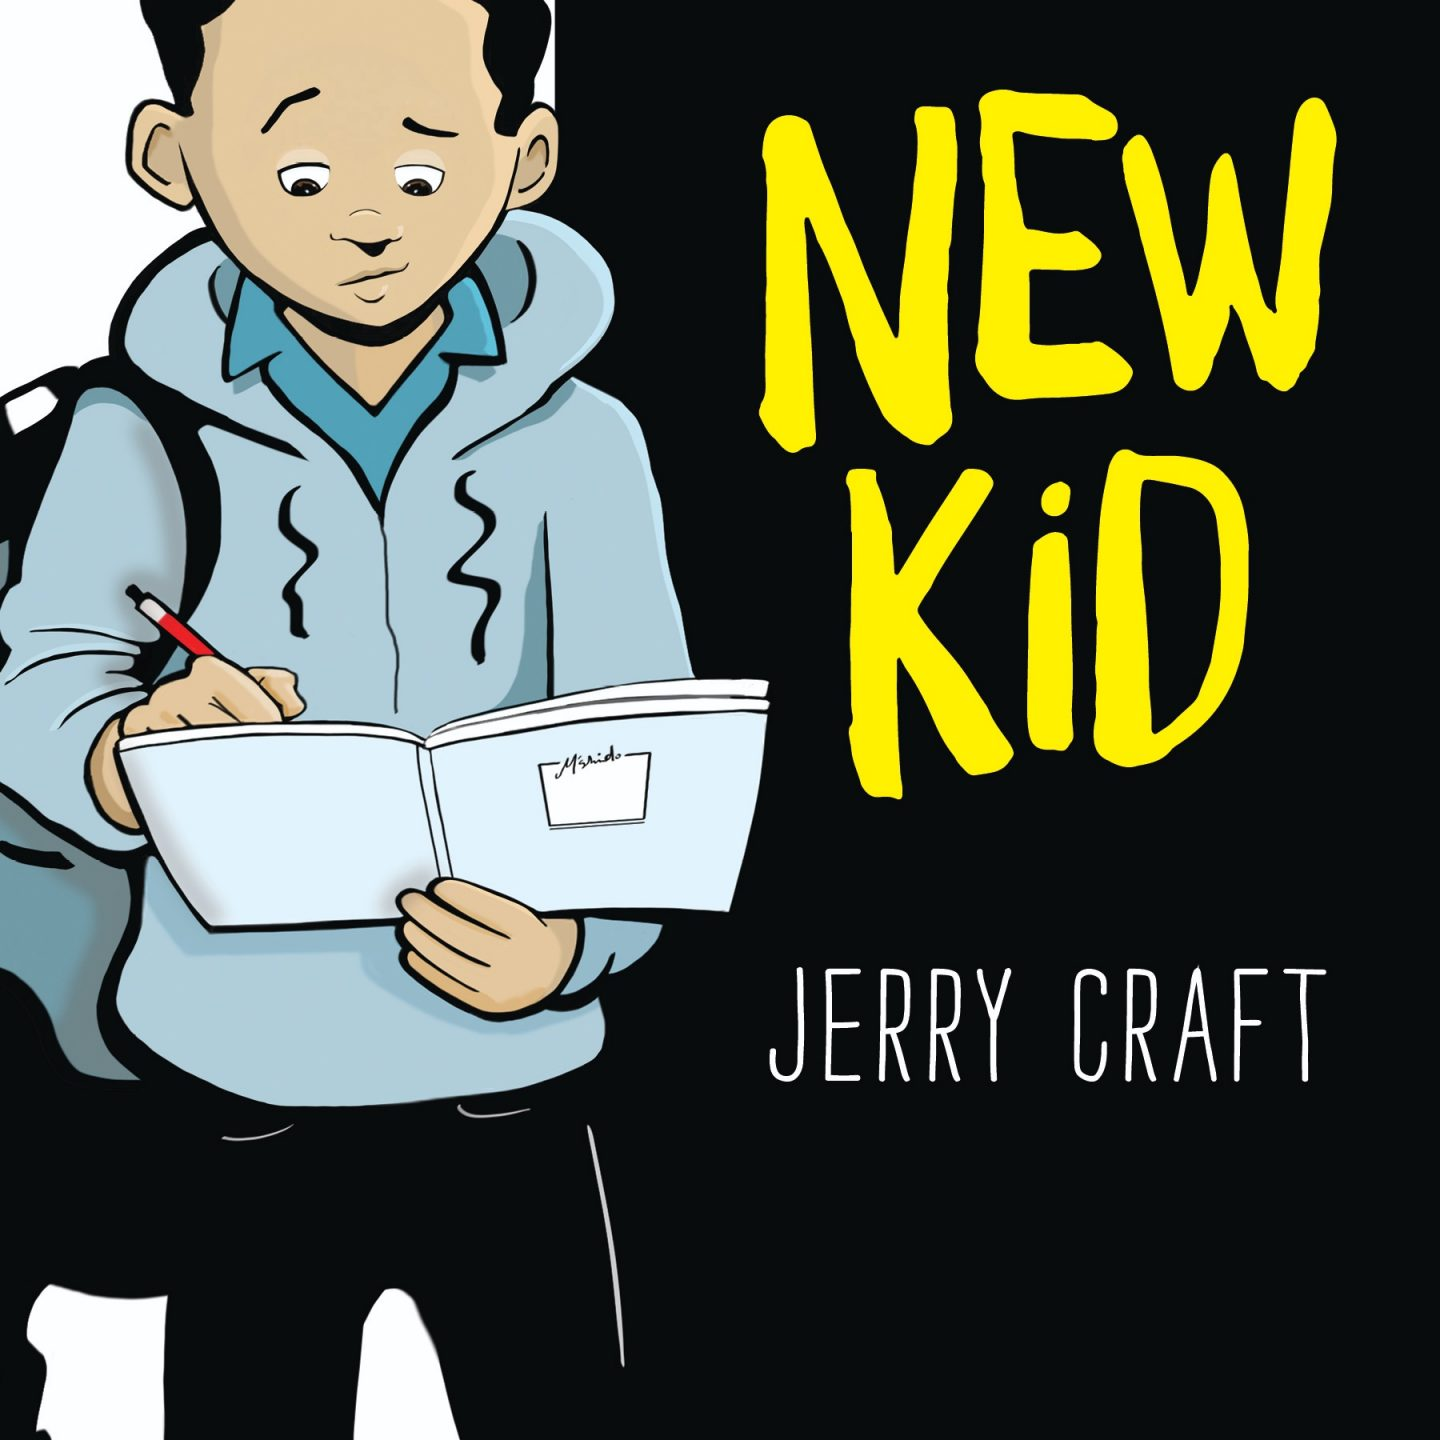 MG Book Launch: New Kid by Jerry Craft